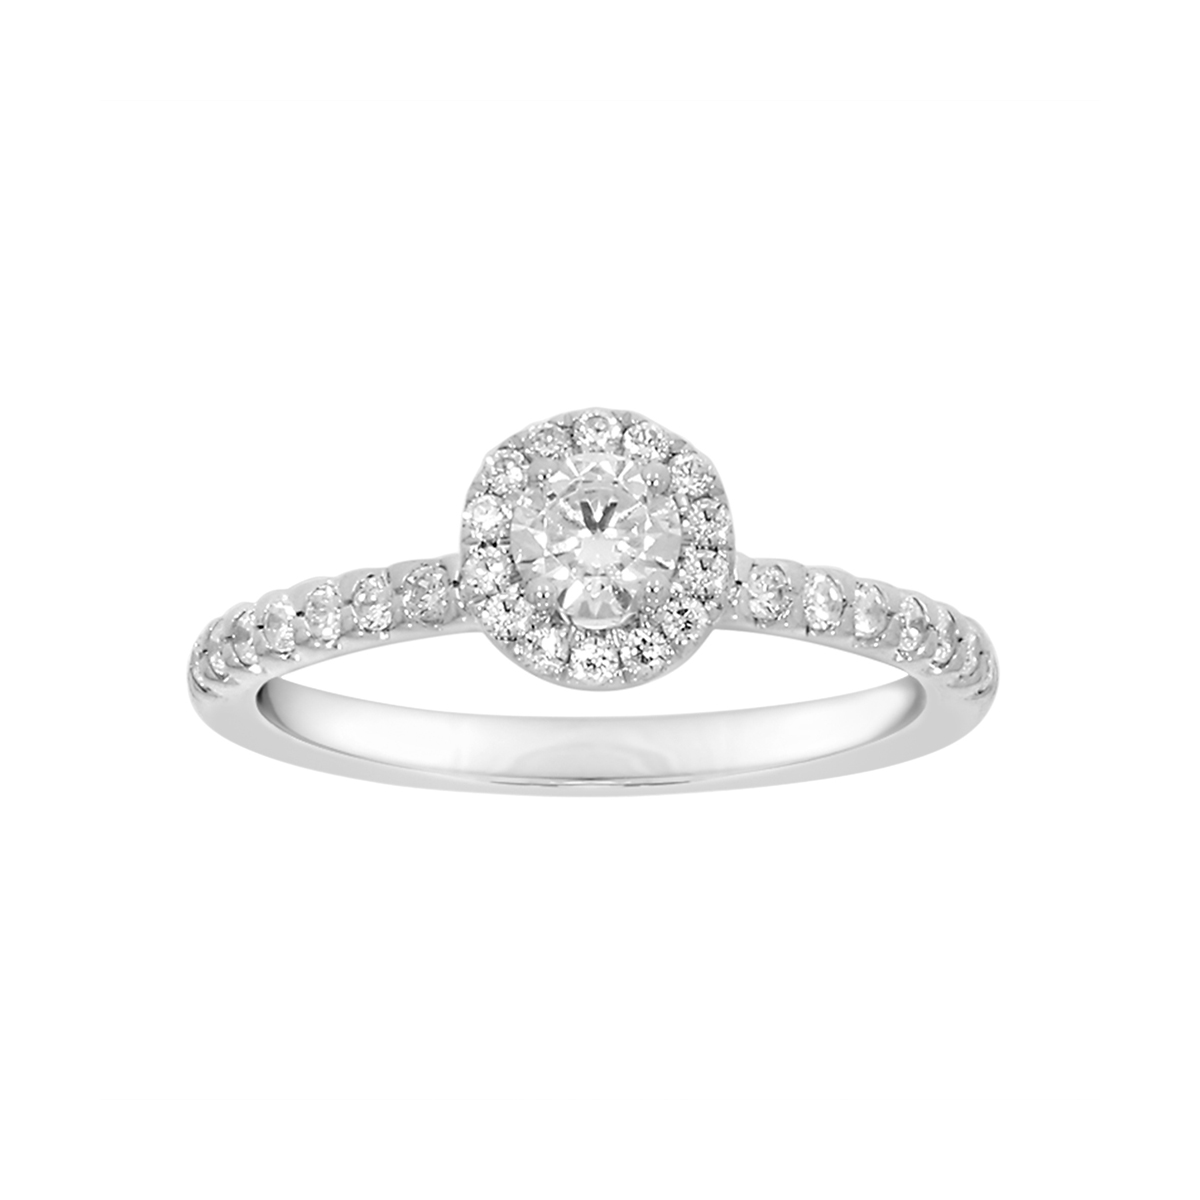 Paramount Gems 14 Karat White Gold Round Brilliand Diamond Ring